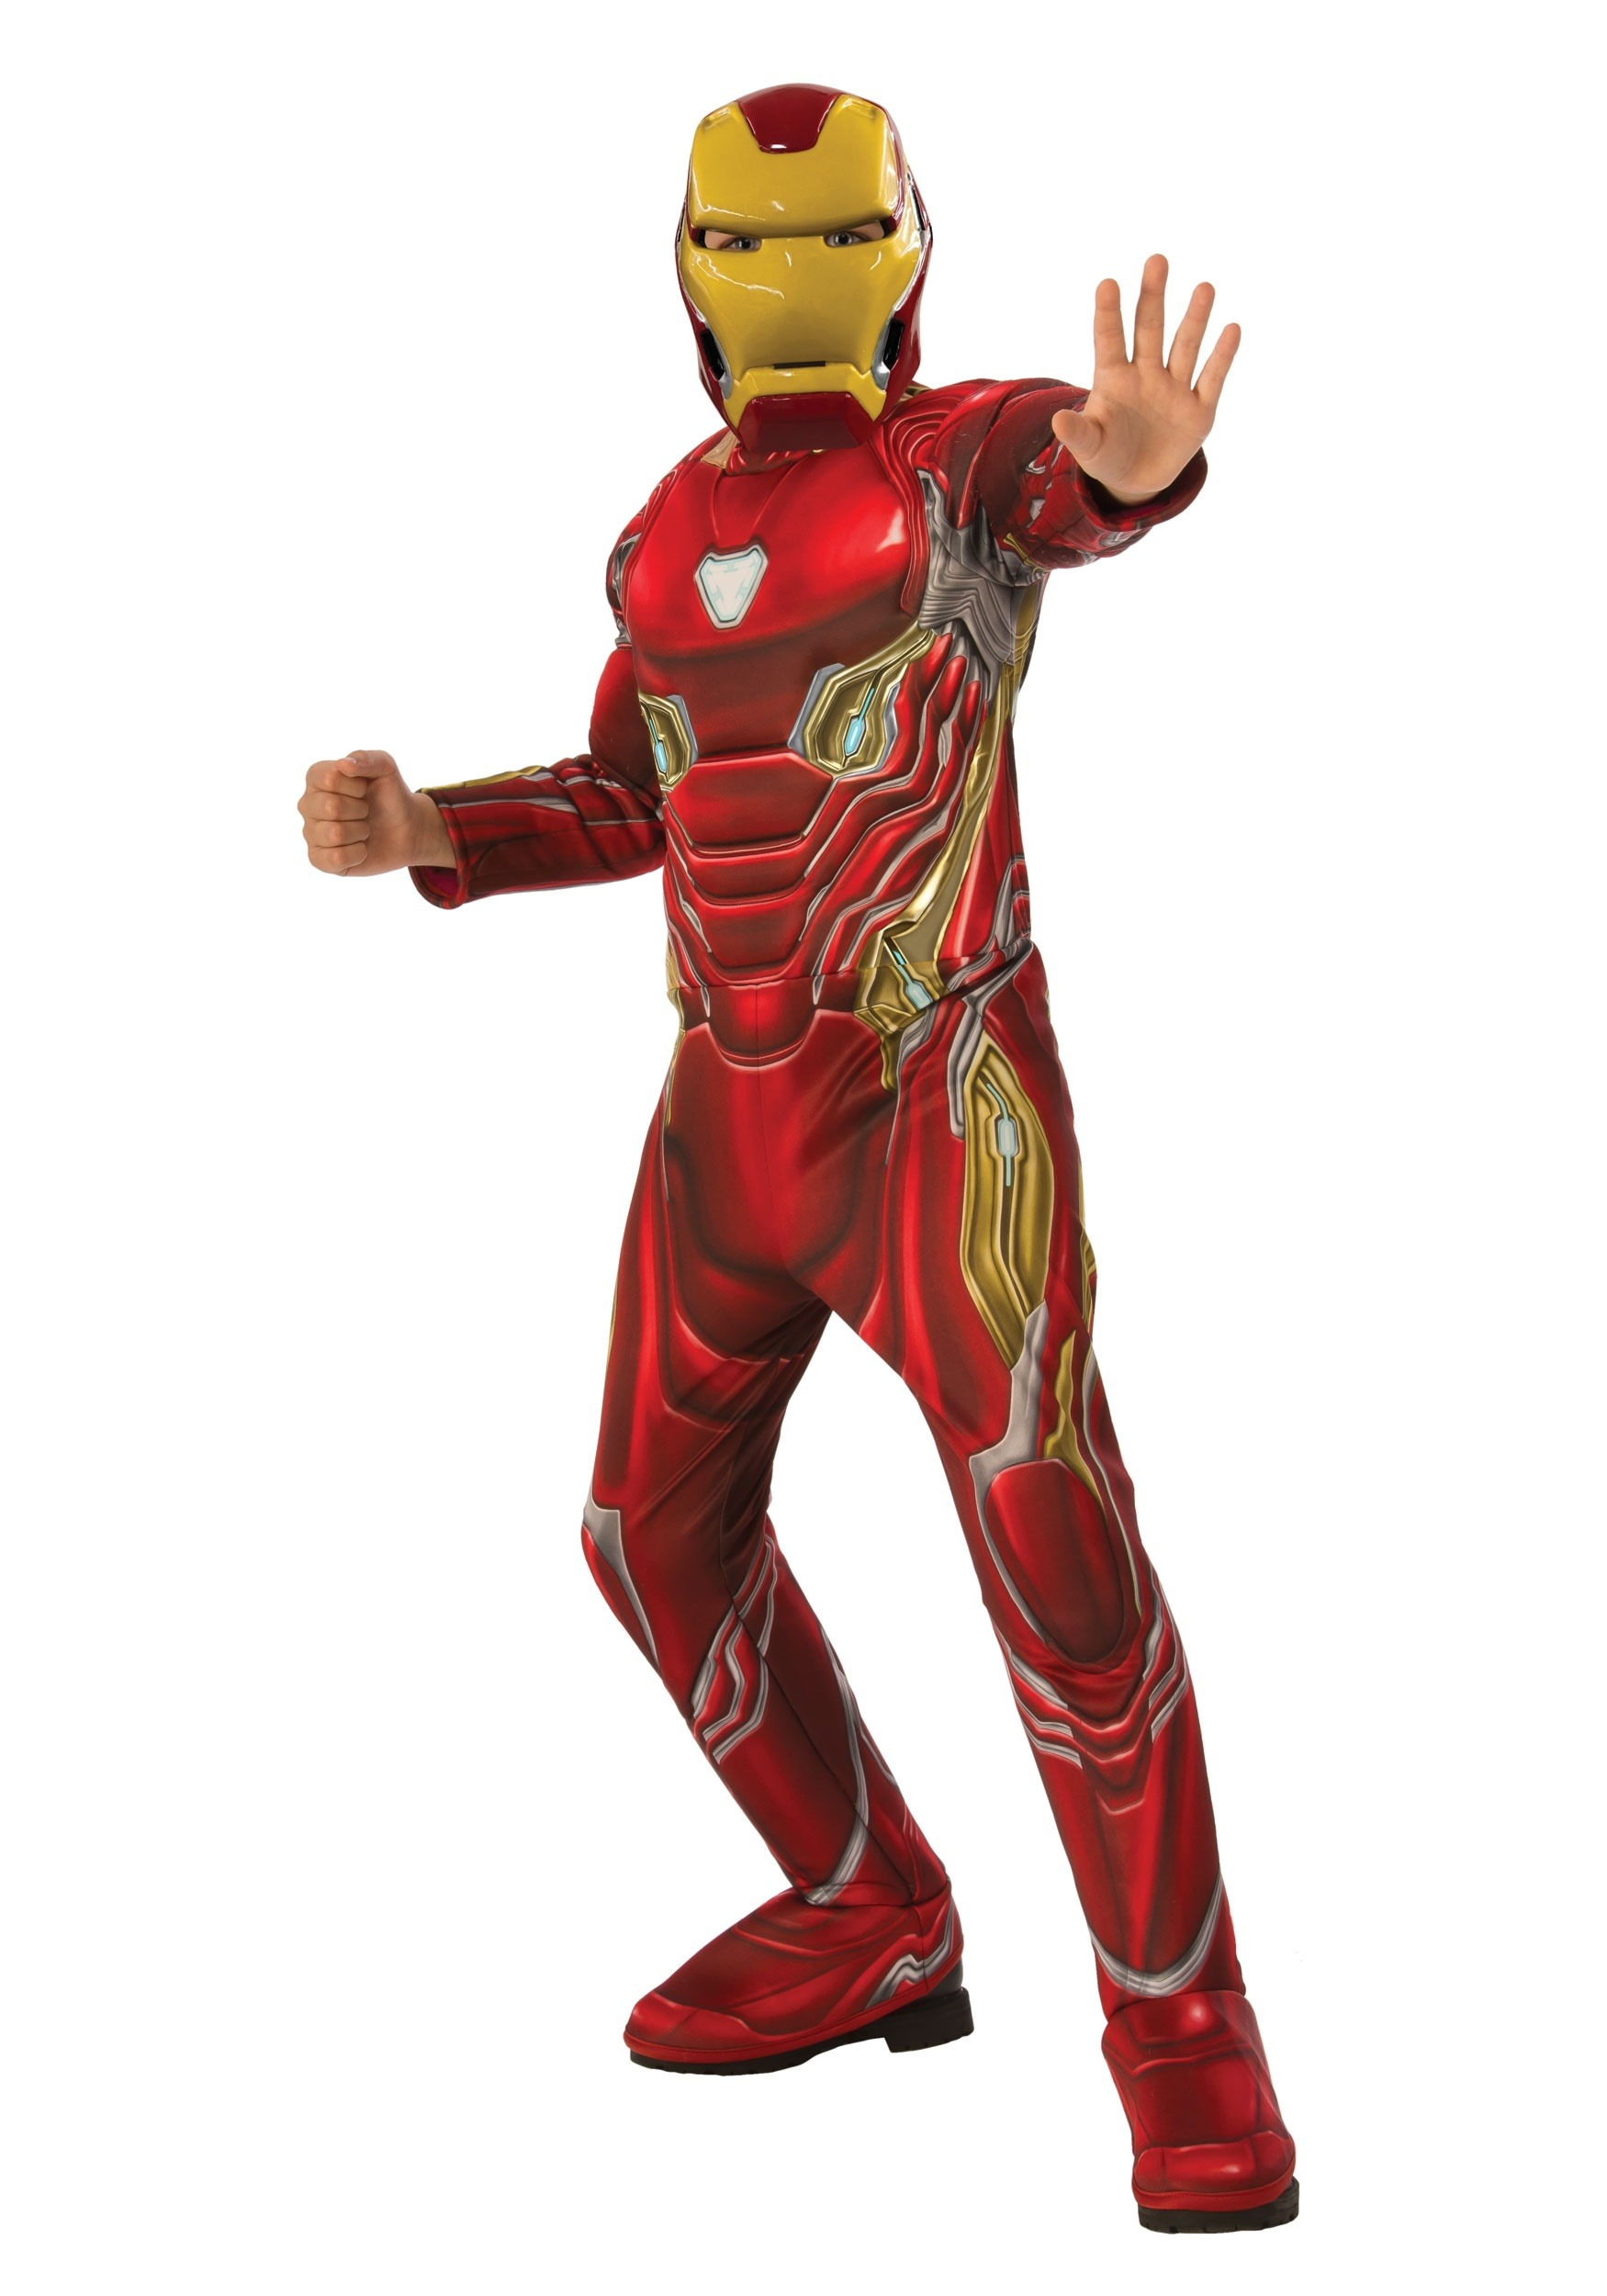 e72cba4a6 Marvel Infinity War Child Deluxe Iron Man Costume